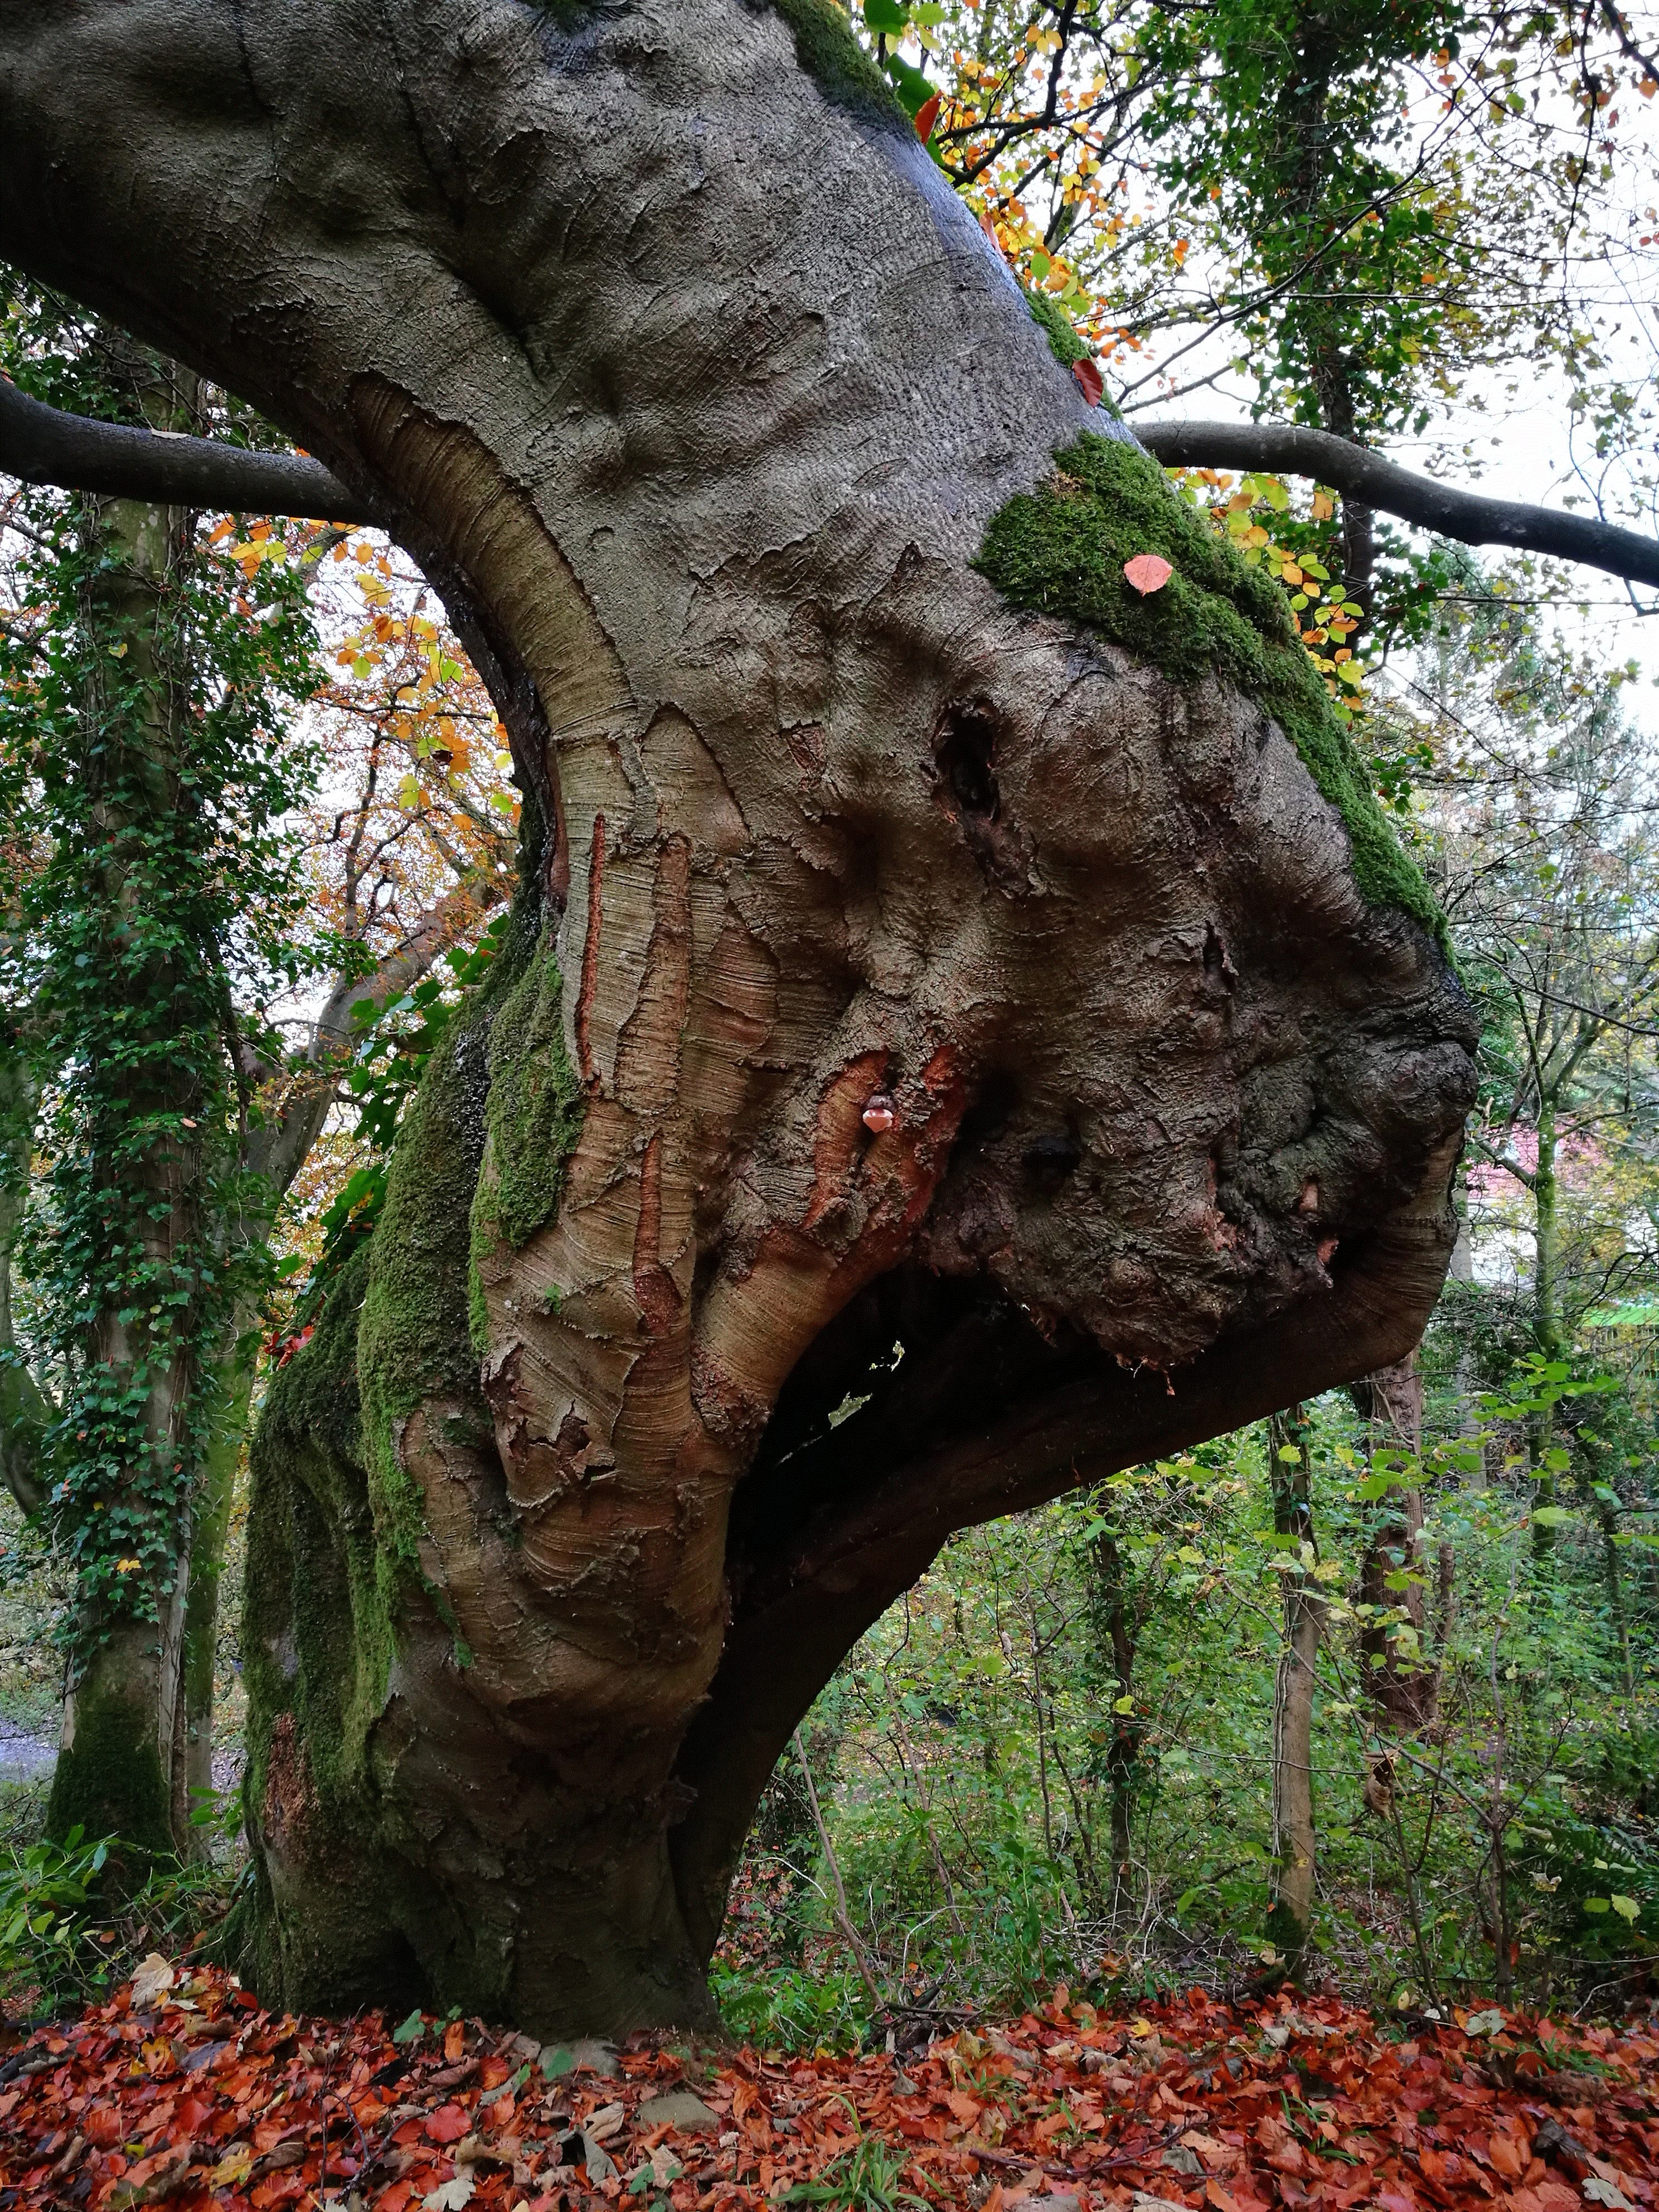 The unusually shaped trunk of a veteran tree